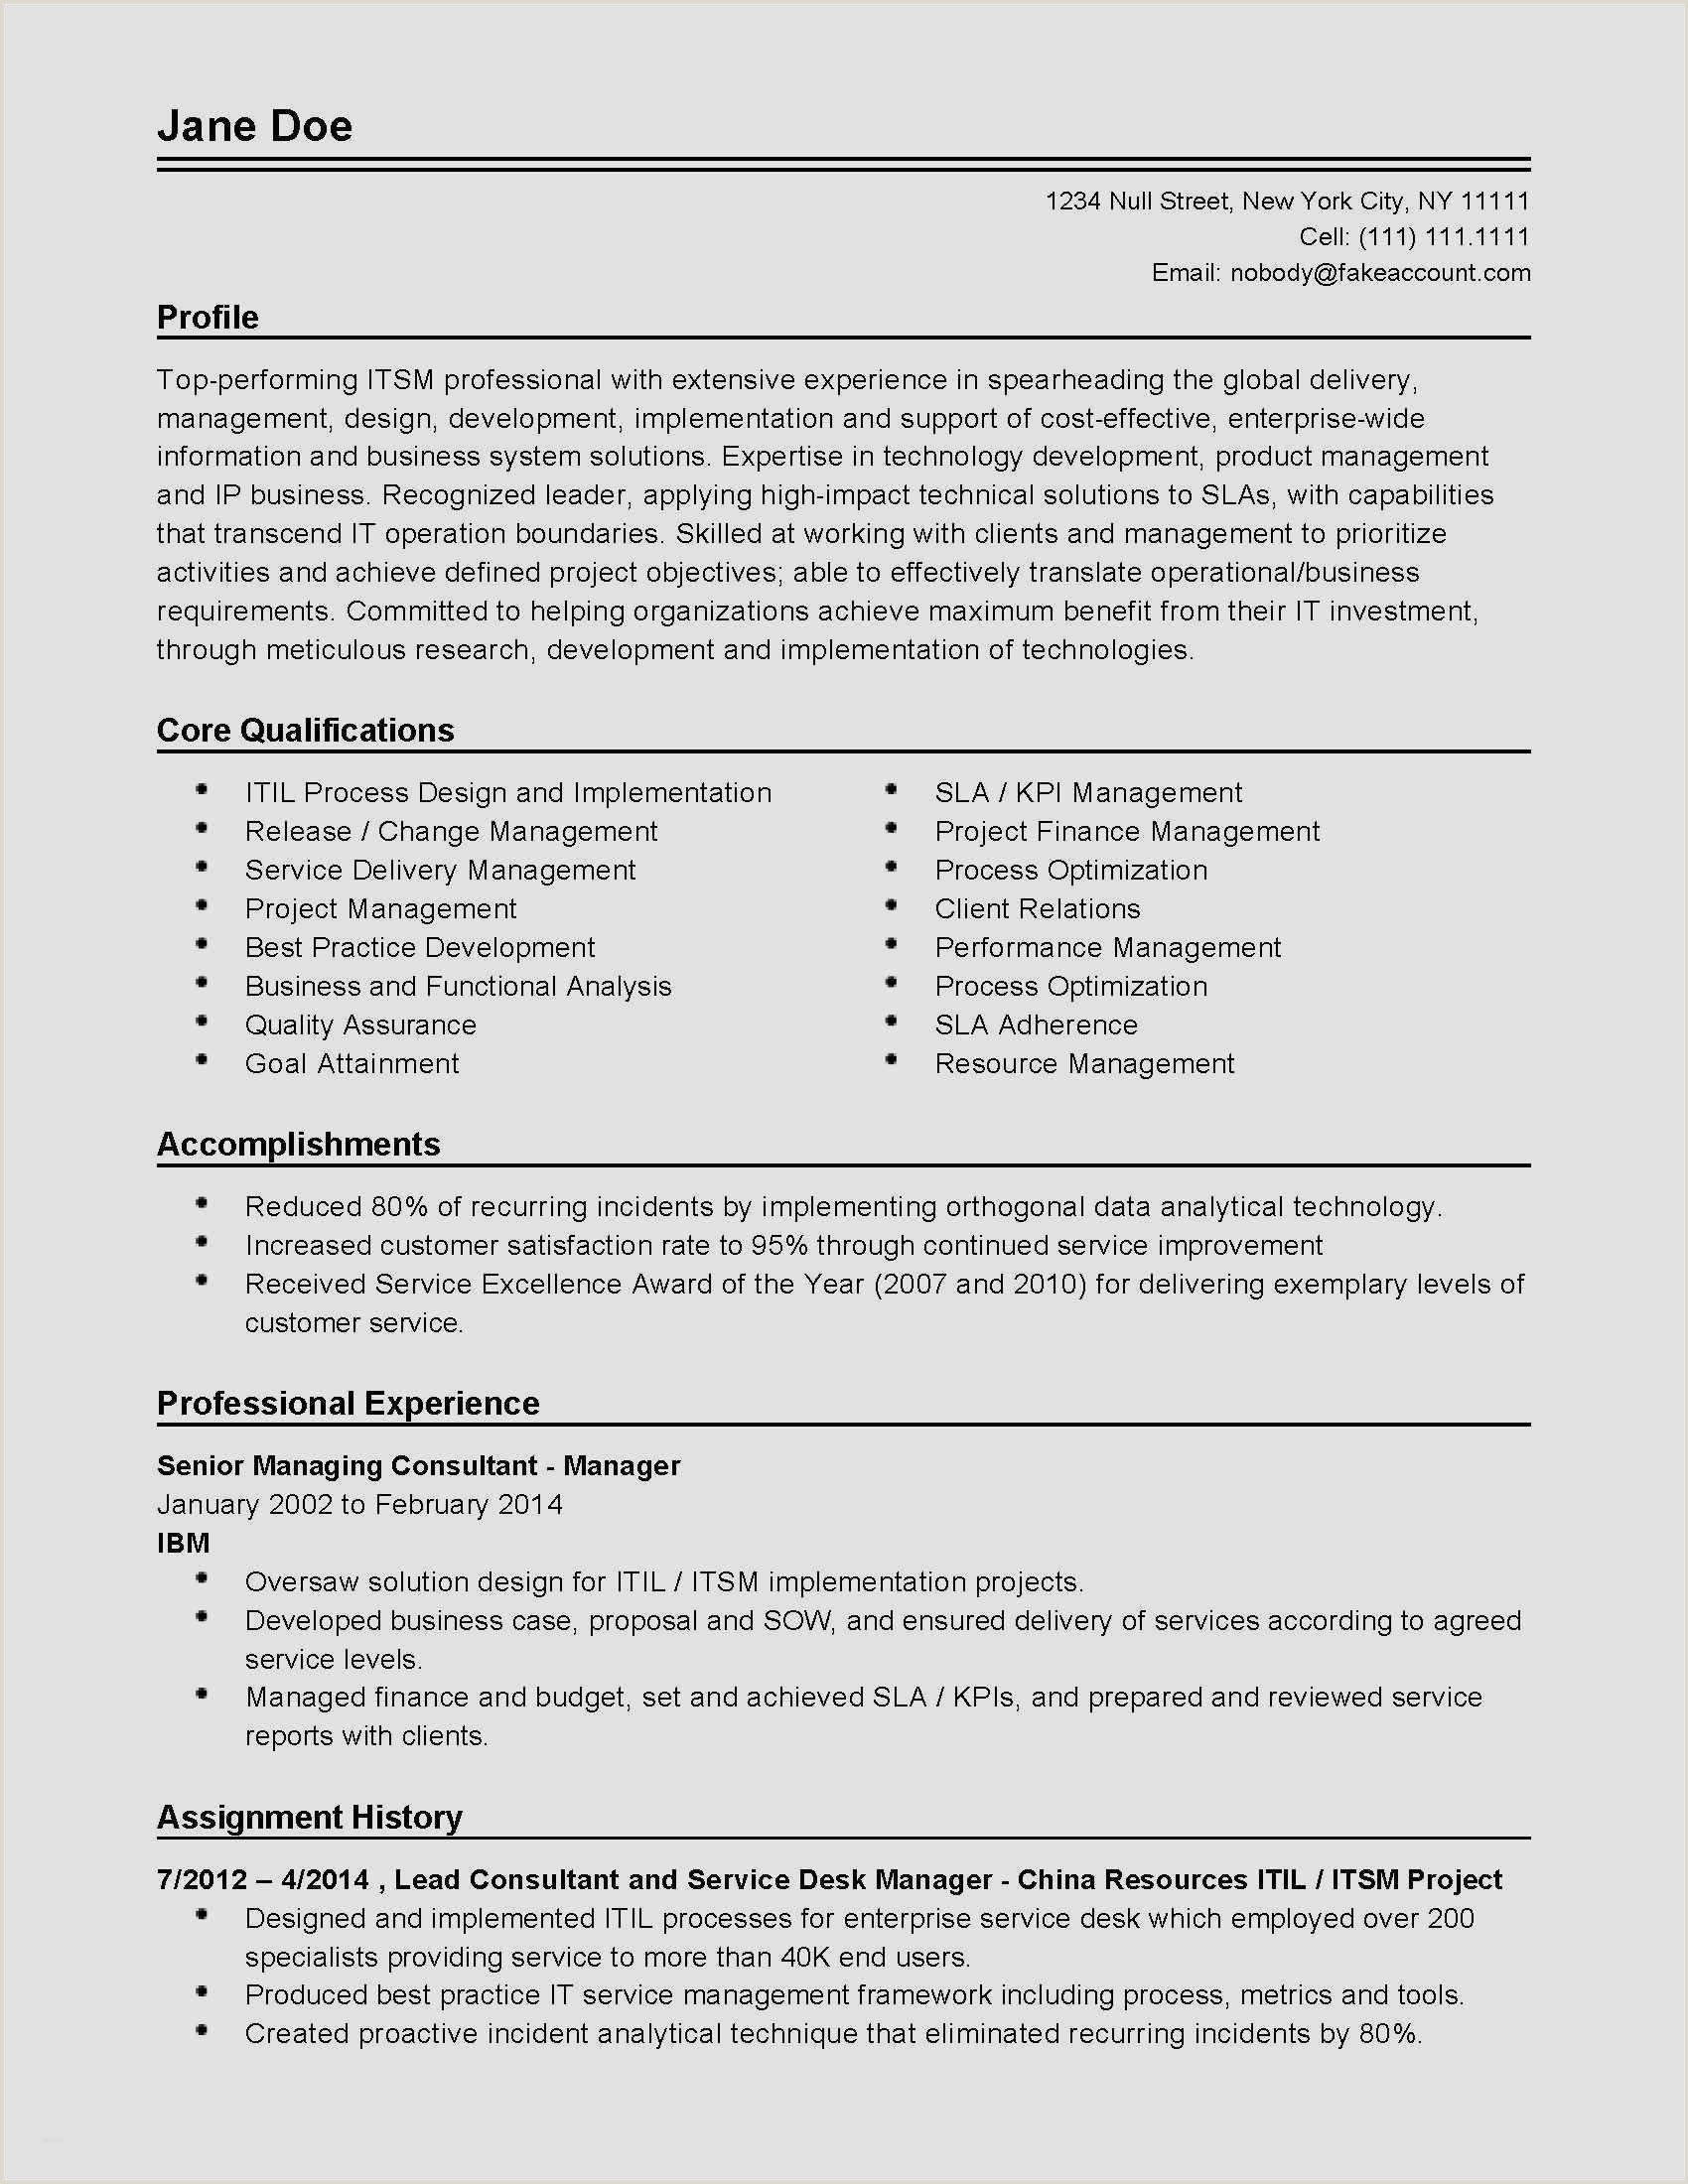 Resume format for Electrician Job 59 Sap S4 Hana Resume